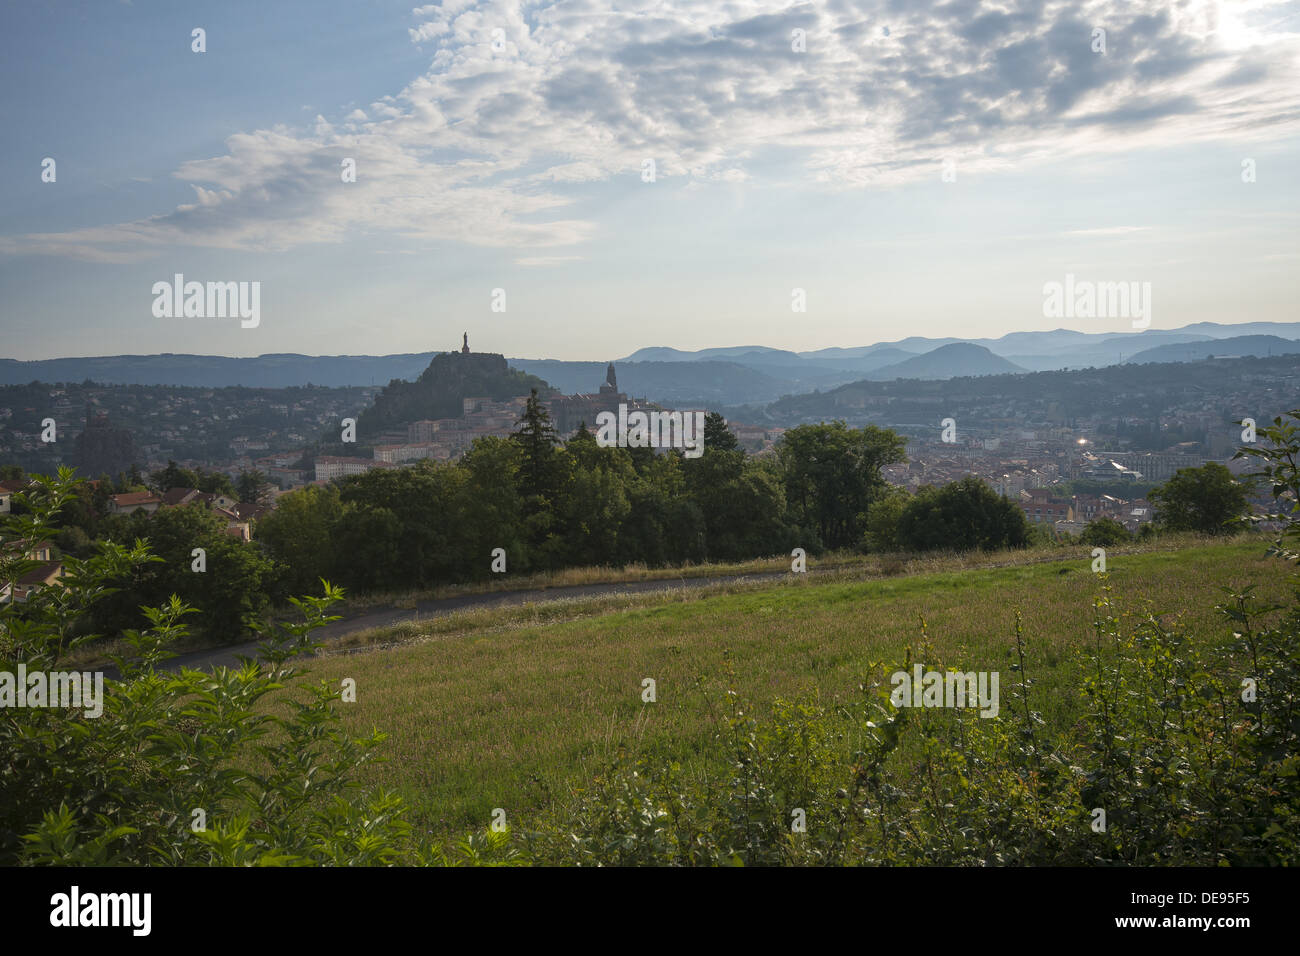 Looking back on Le Puy-en-Velay in the morning light from the GR65 walking route the Way of St James in France - Stock Image